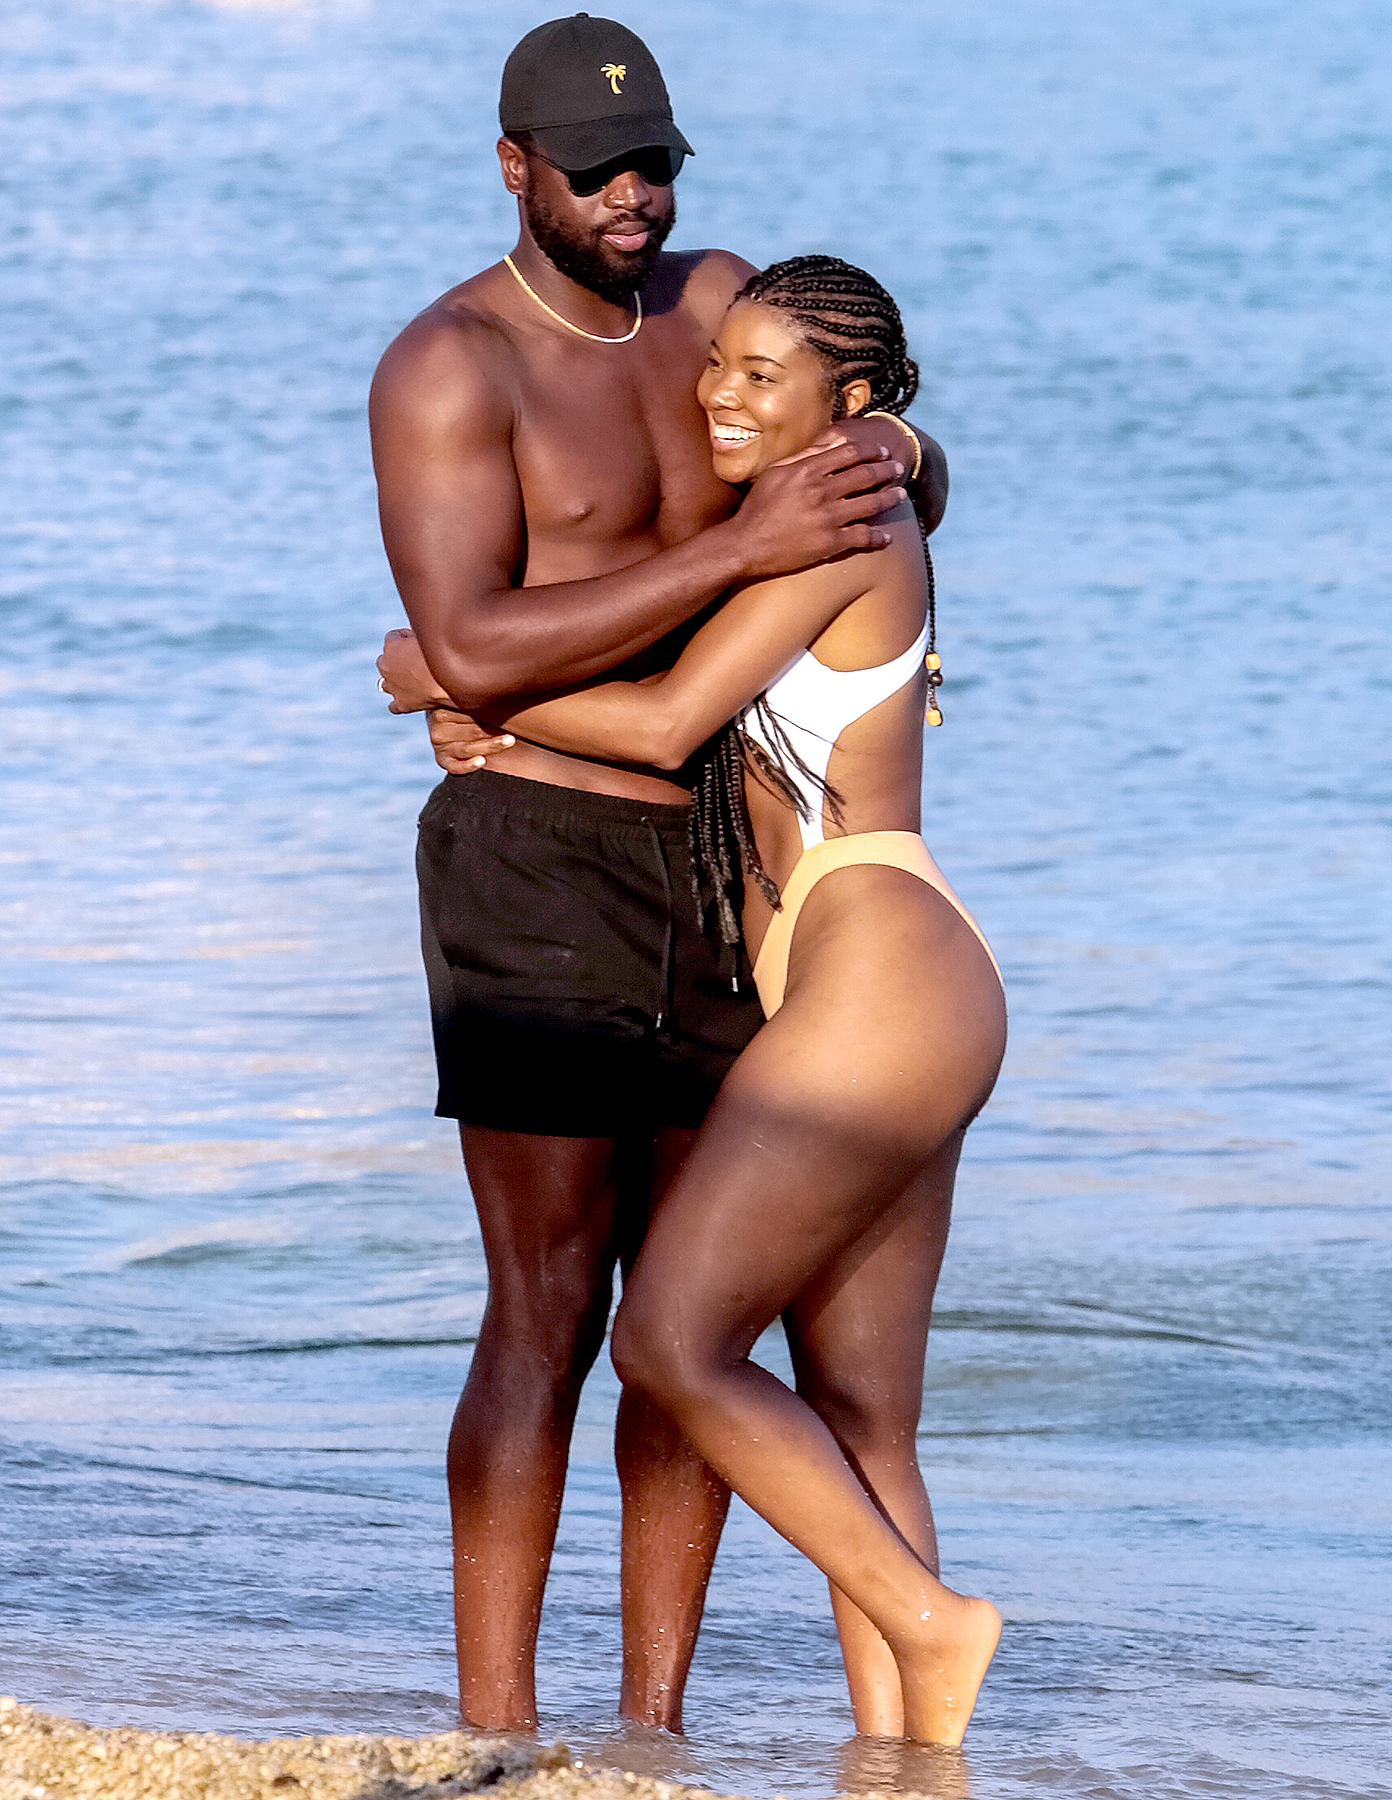 Dwayne Wade and Gabrielle Union have fun at the beach on Mykonos in Greece, August 24, 2017.